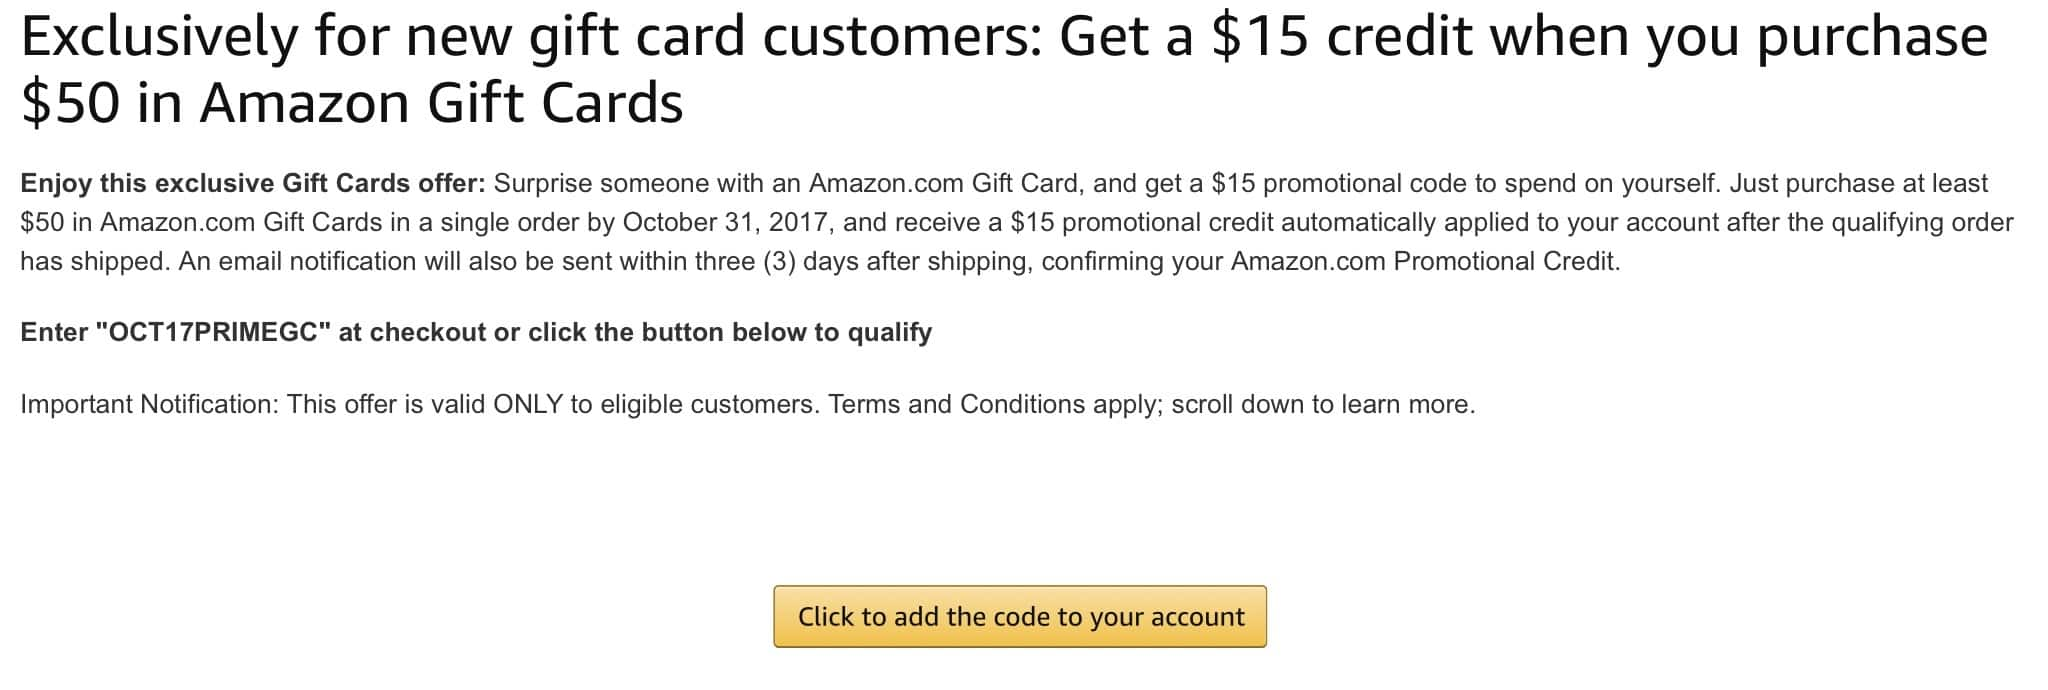 Heads up: New Amazon gift card customers get a $15 credit when you purchase $50 in Amazon Gift Cards. Promo Code, YMMV